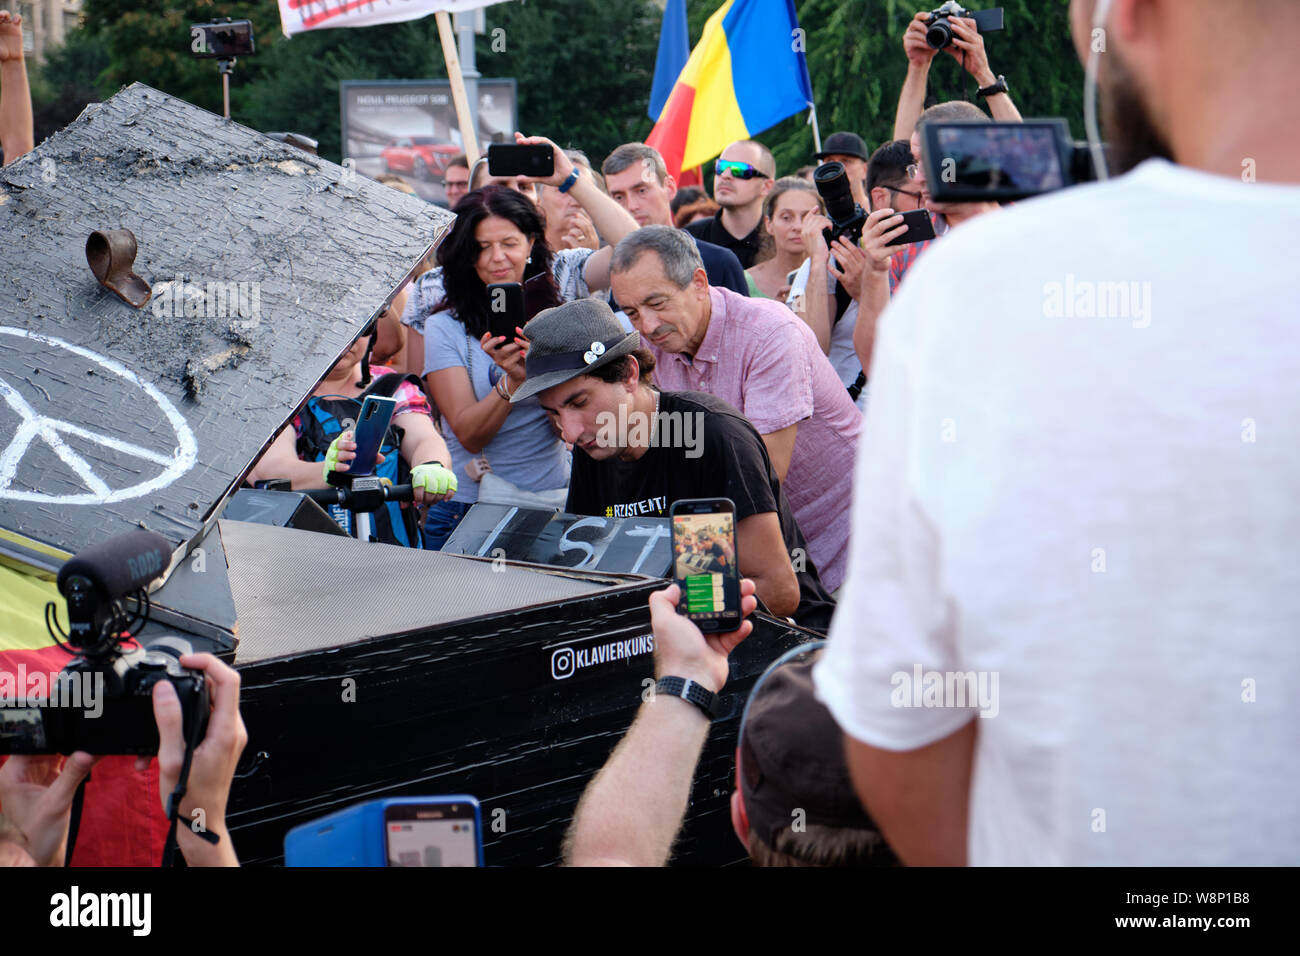 bucharest-romania-10th-august-2019-german-pianist-davide-martello-plays-piano-for-the-crowd-of-protesters-at-the-anti-corruption-manifestation-martello-cancelled-other-concerts-to-specifically-attend-the-event-which-takes-place-on-the-anniversary-of-last-years-violent-confrontation-in-the-city-credit-jf-pelletieralamy-live-news-W8P1B8.jpg